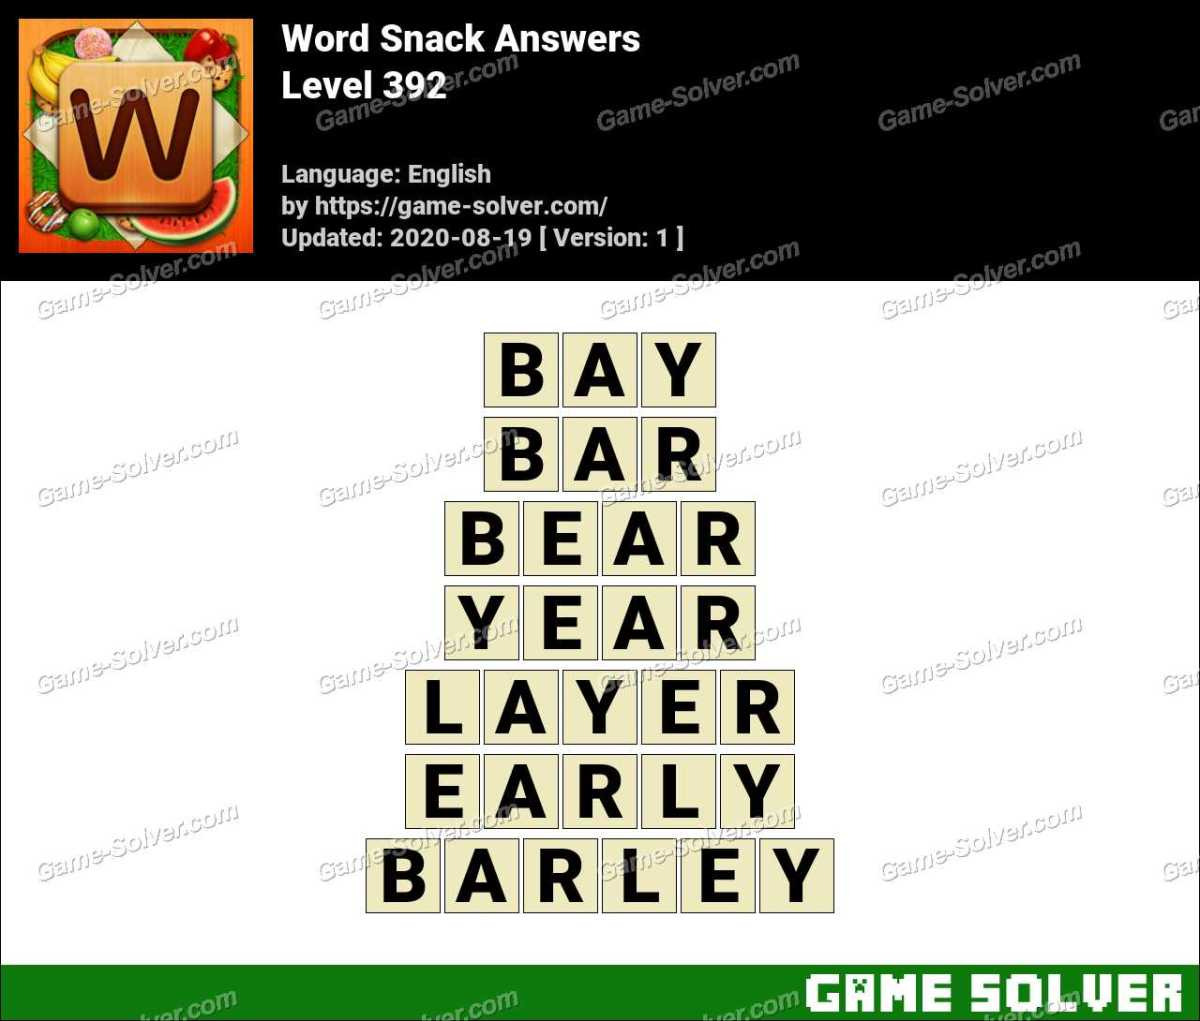 Word Snack Level 392 Answers